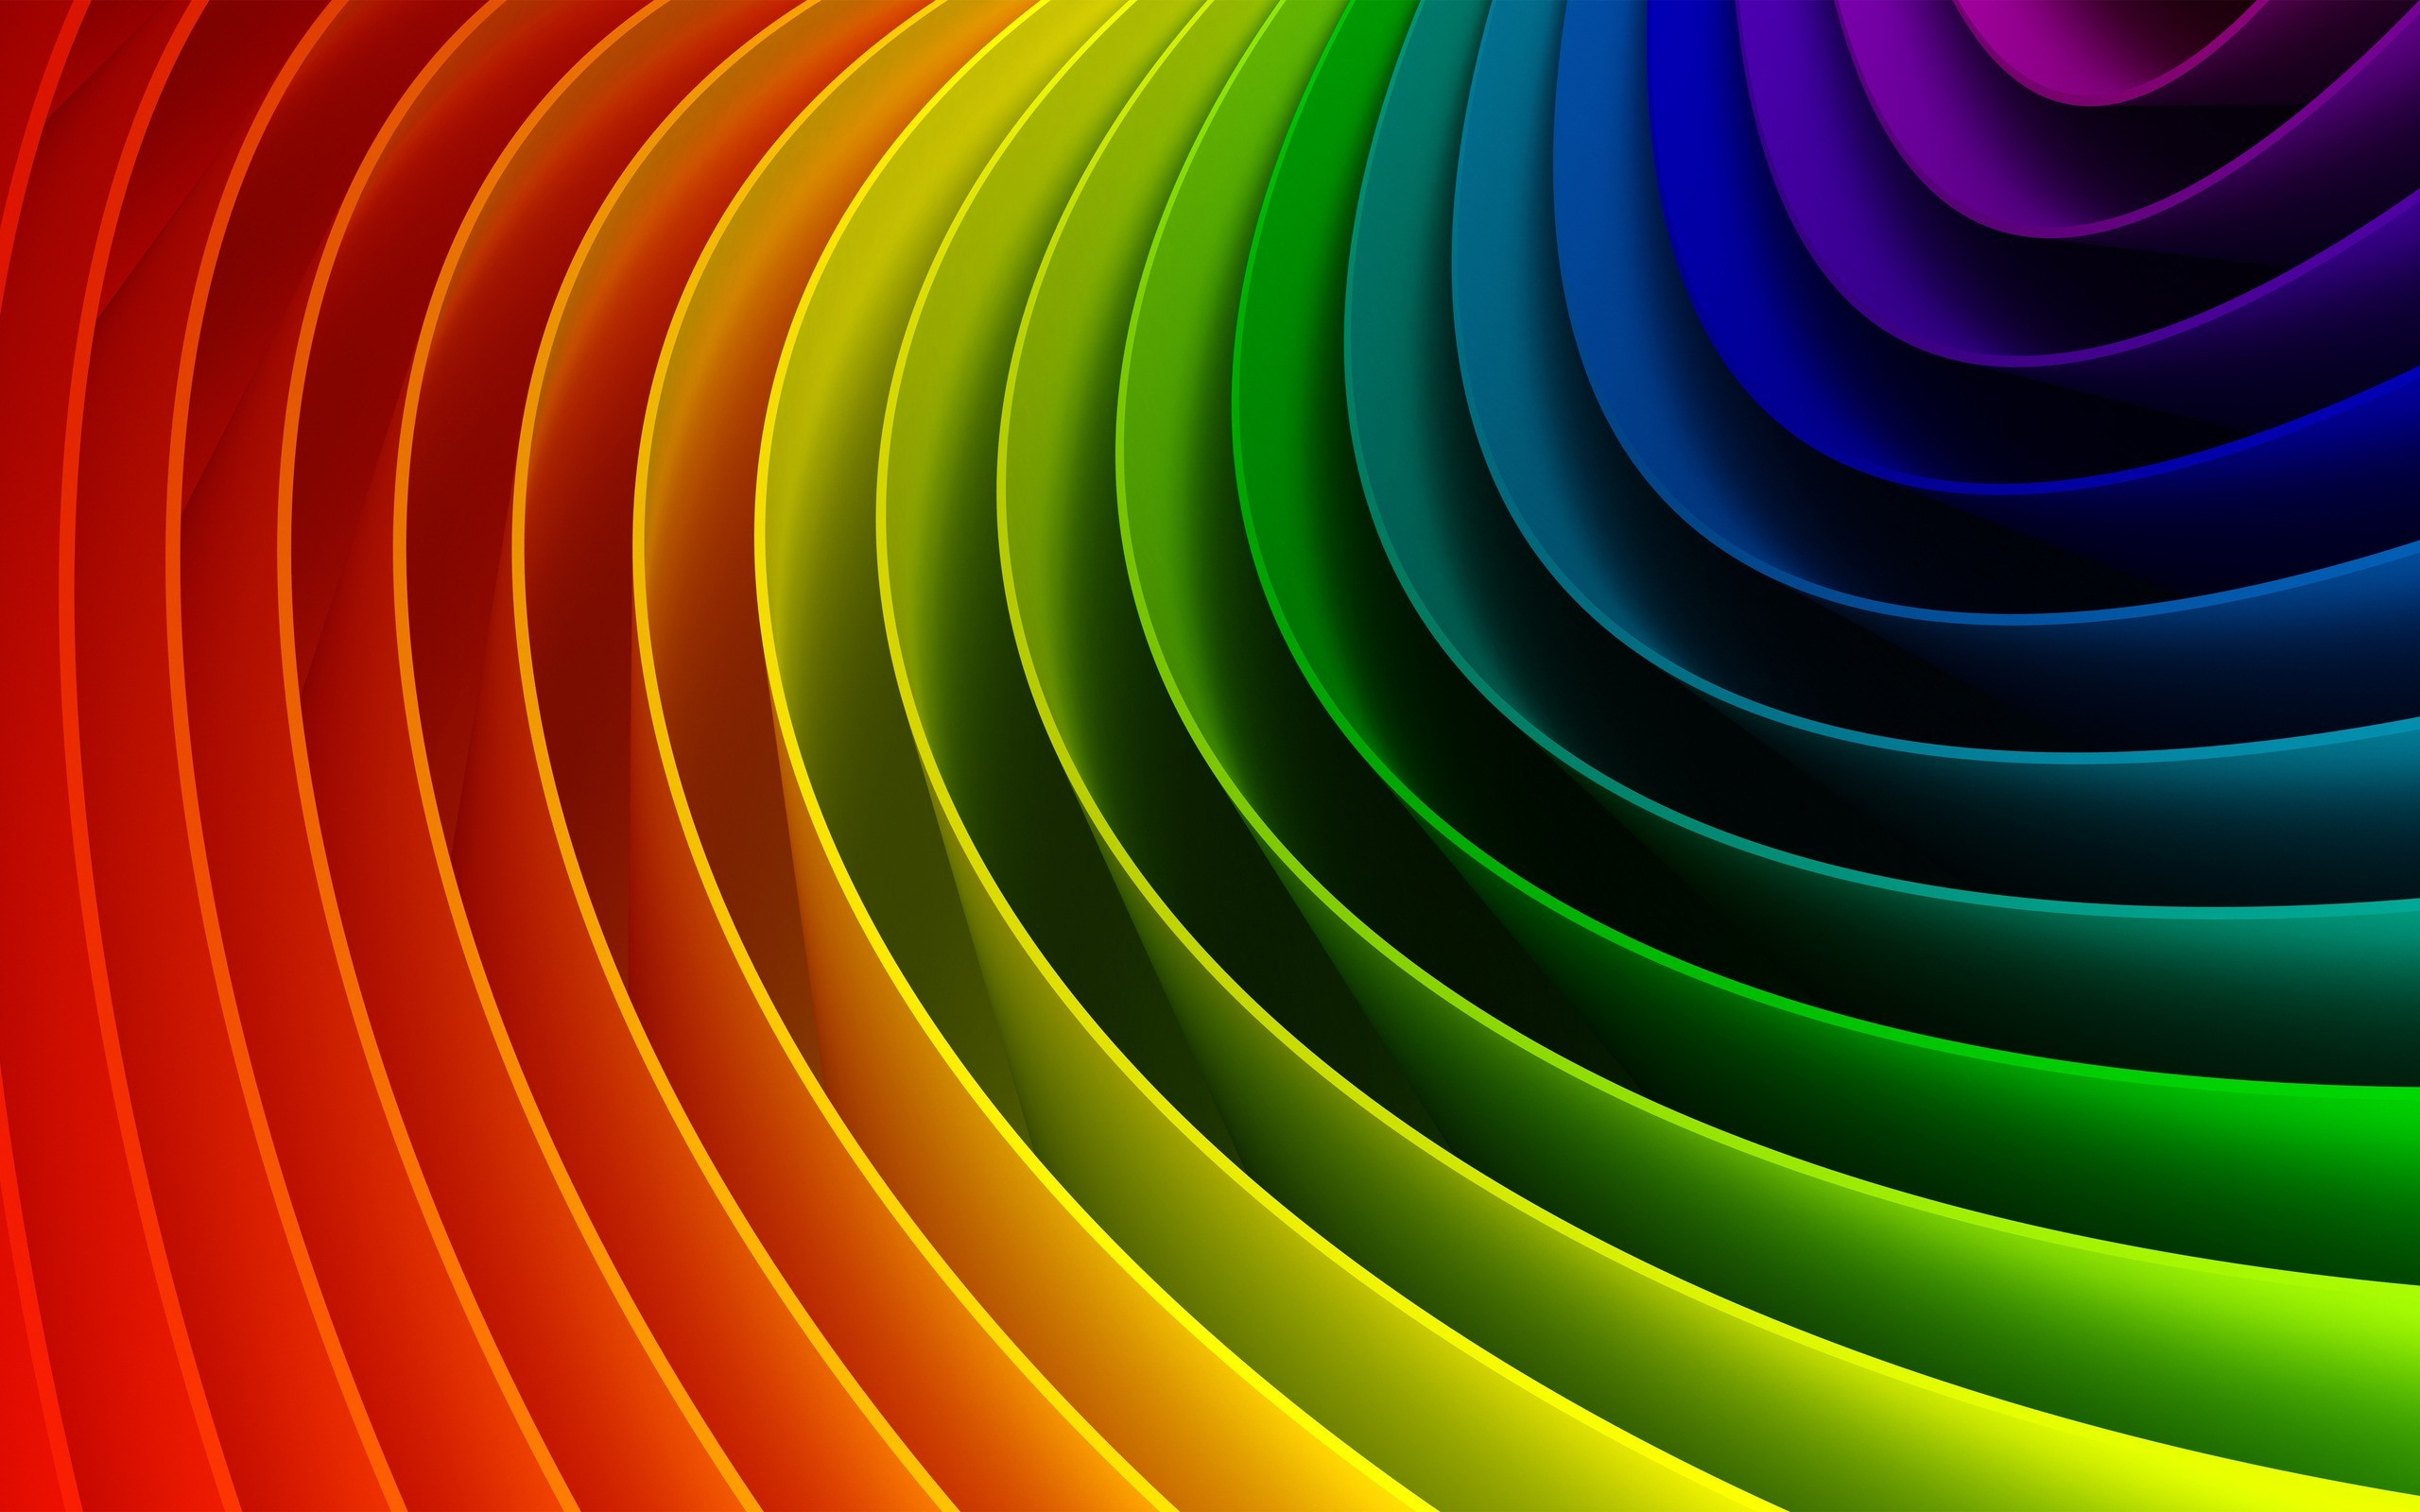 Colorful Rainbow wallpaper Colorful Rainbow hd wallpaper background 2560x1600